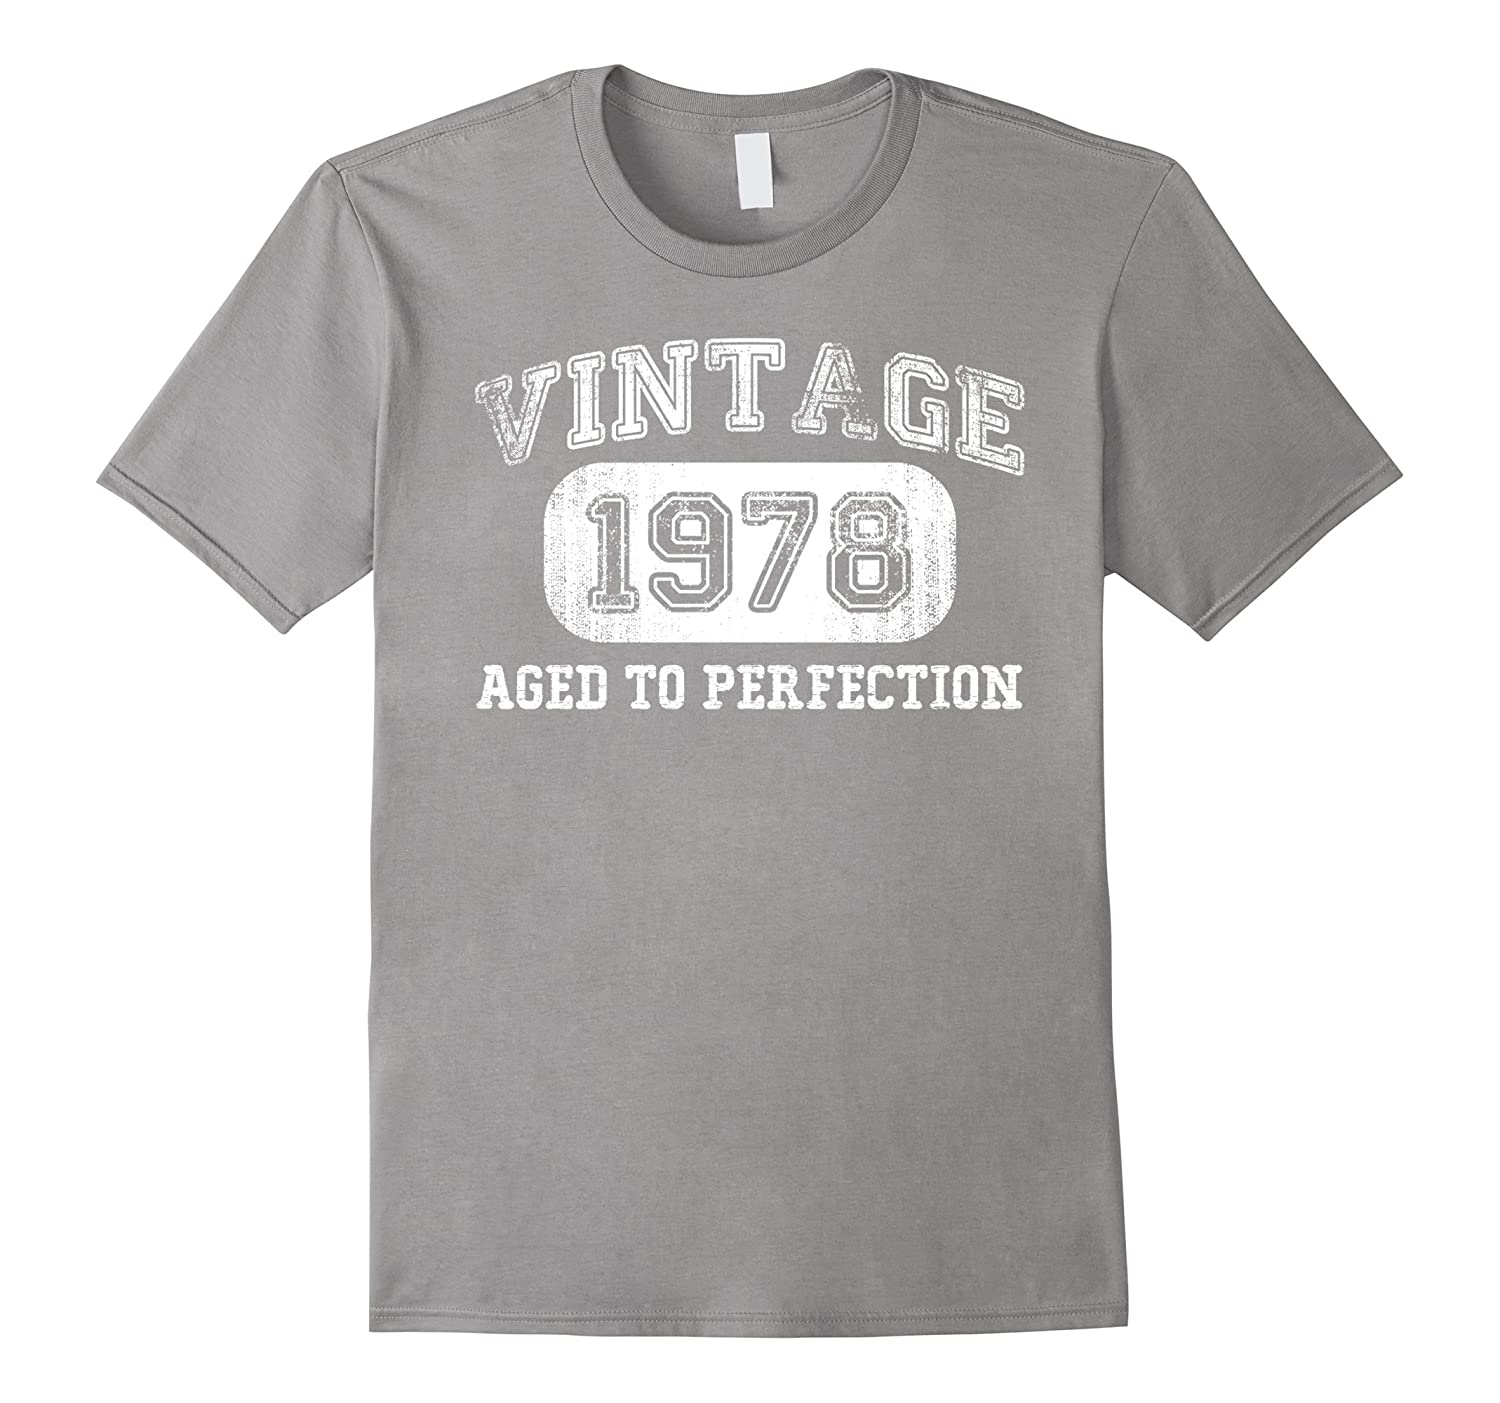 Born in 1978 T-shirt 39th Birthday Gifts Vintage 39 yrs Year-TH